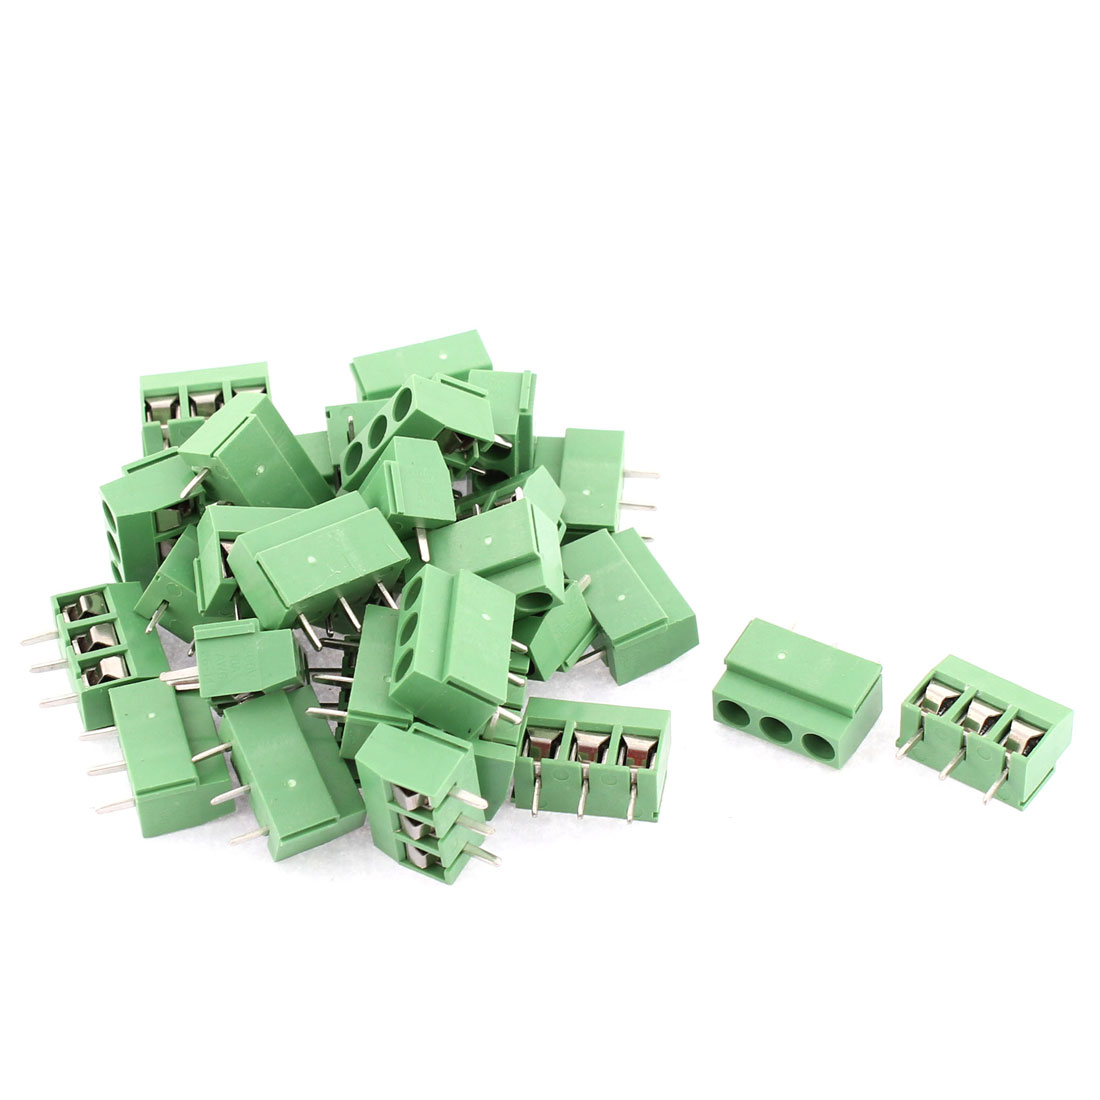 30pcs 300V 10A 3 Poles 5.0mm Pitch Pluggable PCB Terminal Block Cable Connector for AWG26-14 Wire